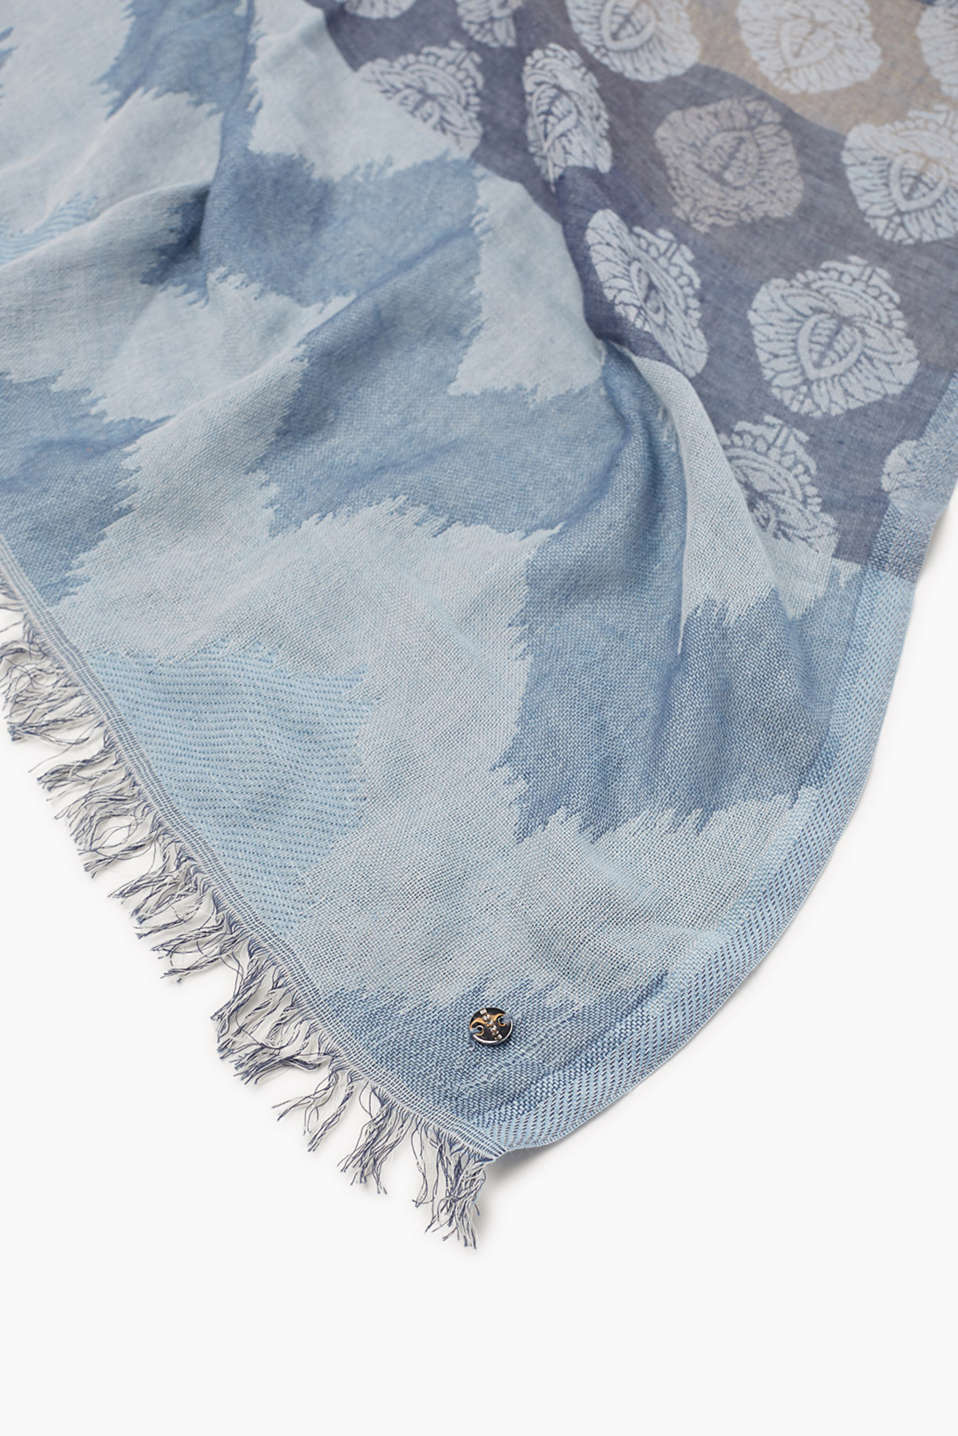 Scarf with jacquard pattern, cotton blend